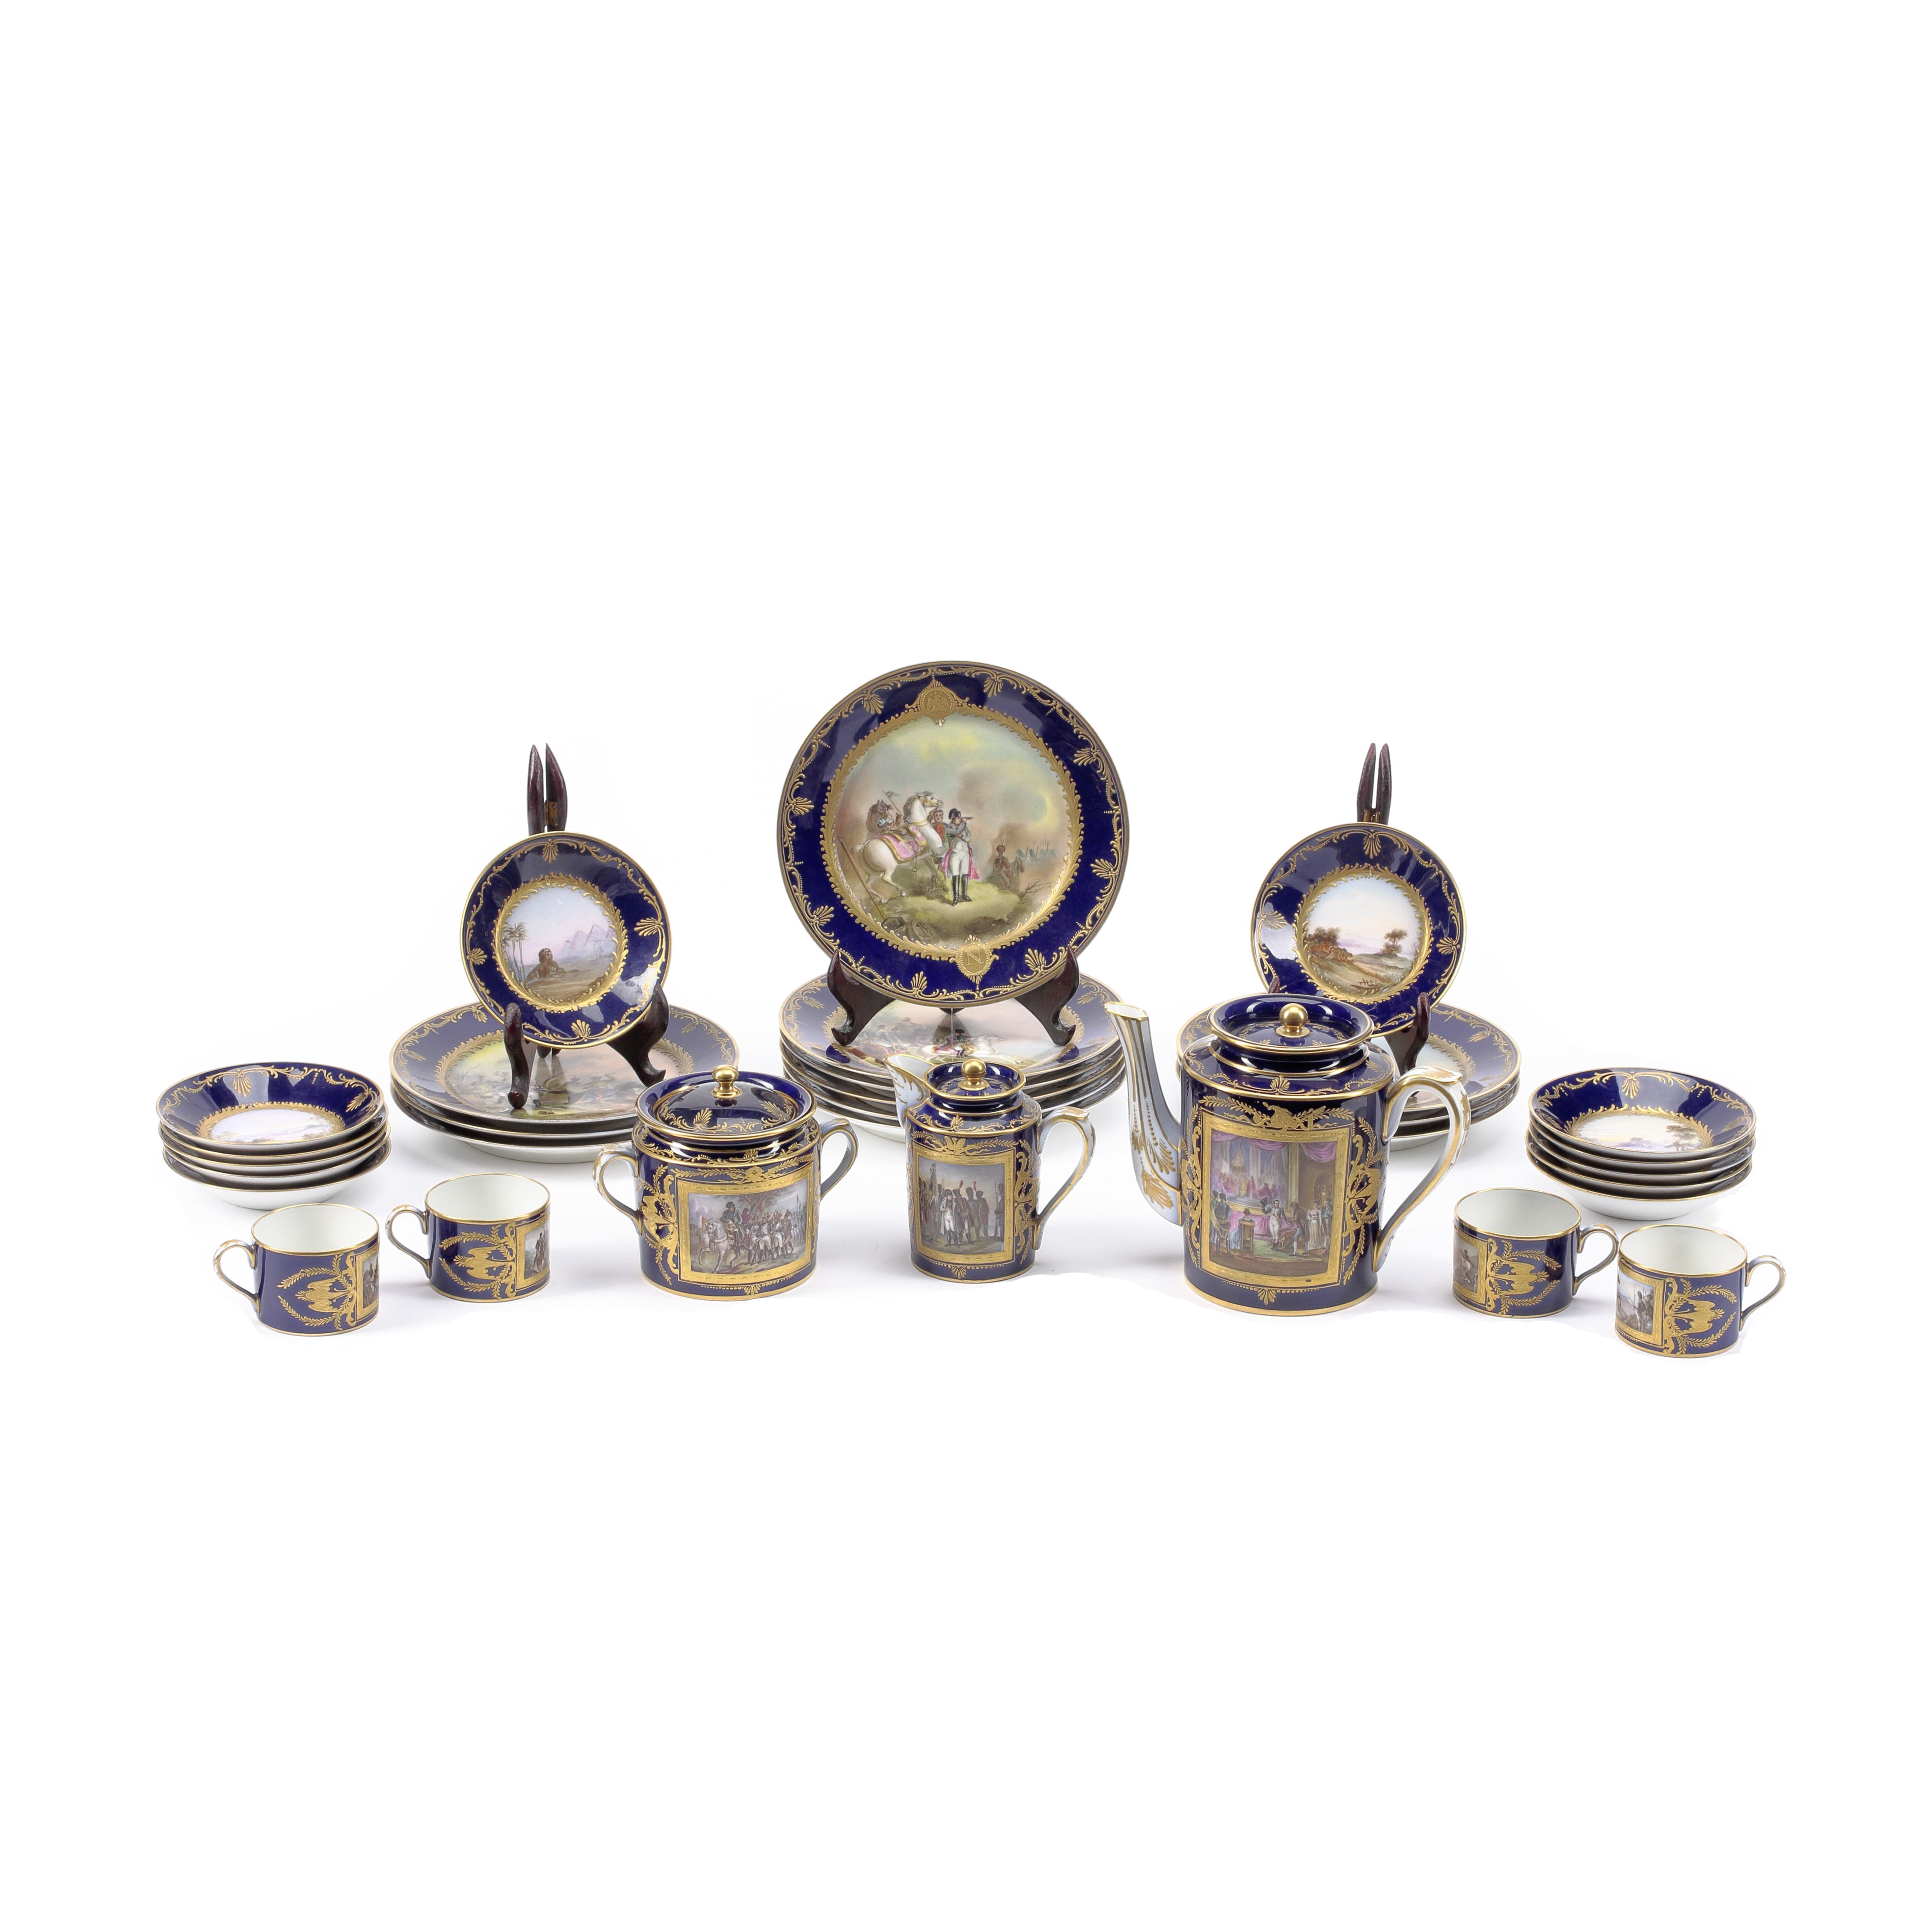 Lot 276 - A Sevres Napoleonic style Gilt and Polychromed Porcelain Coffee Service 19th century